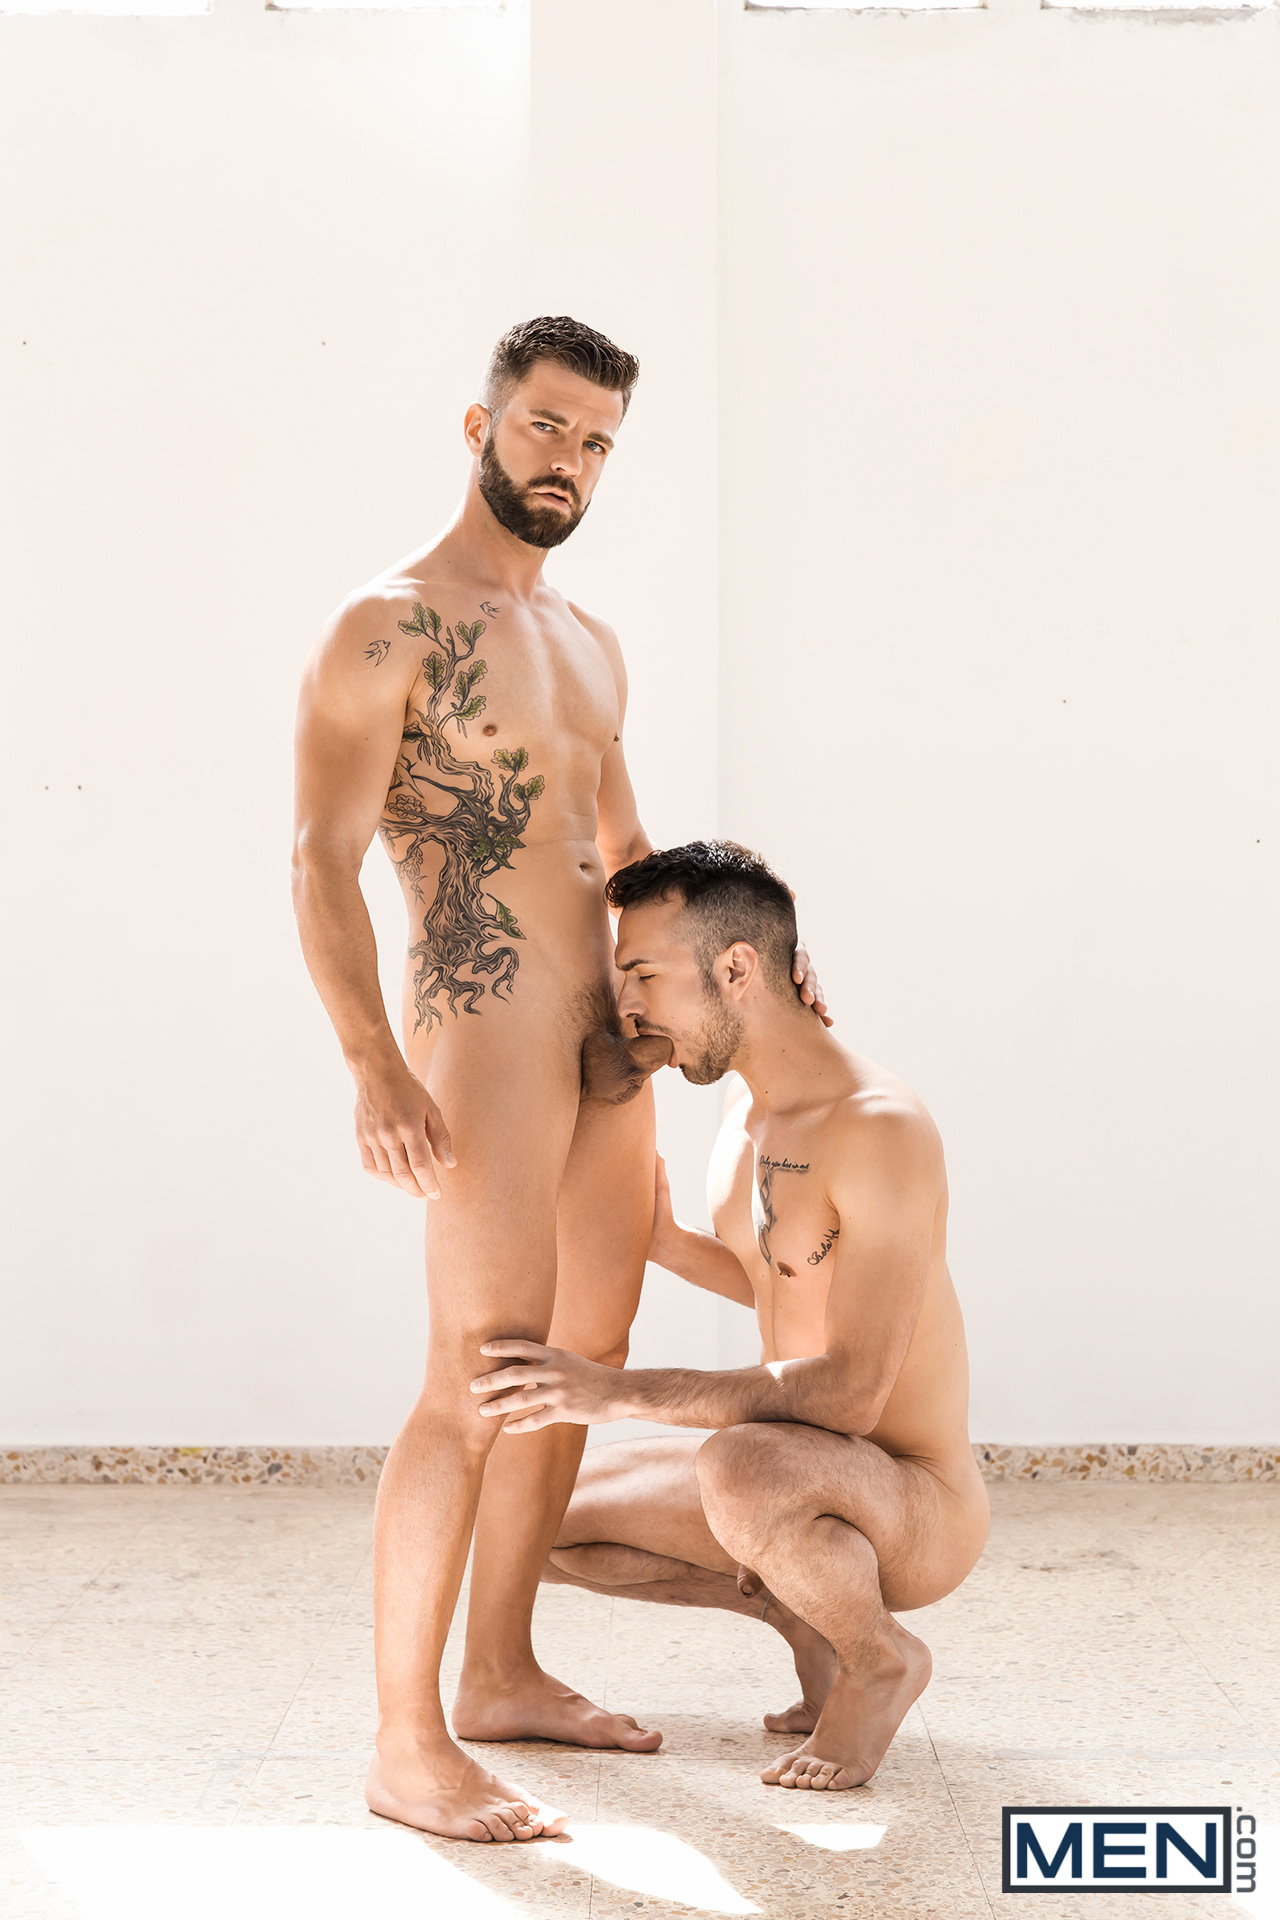 photo sodomie gay sexe gay en français